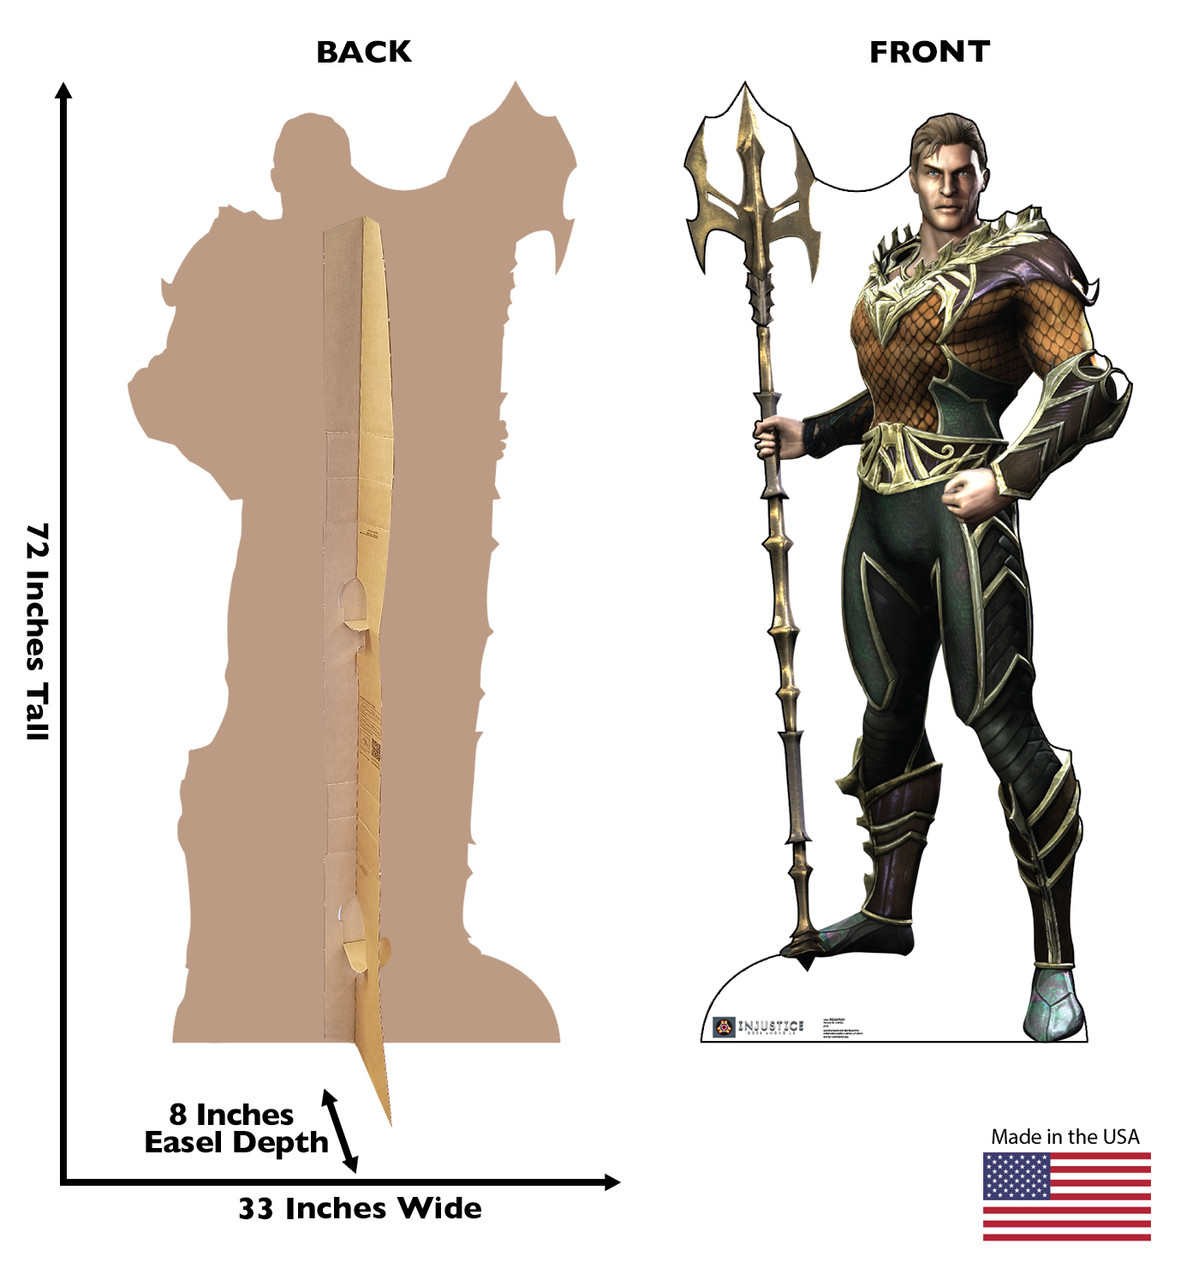 Aquaman - Injustice Gods Among Us - Cardboard Cutout Front and Back View